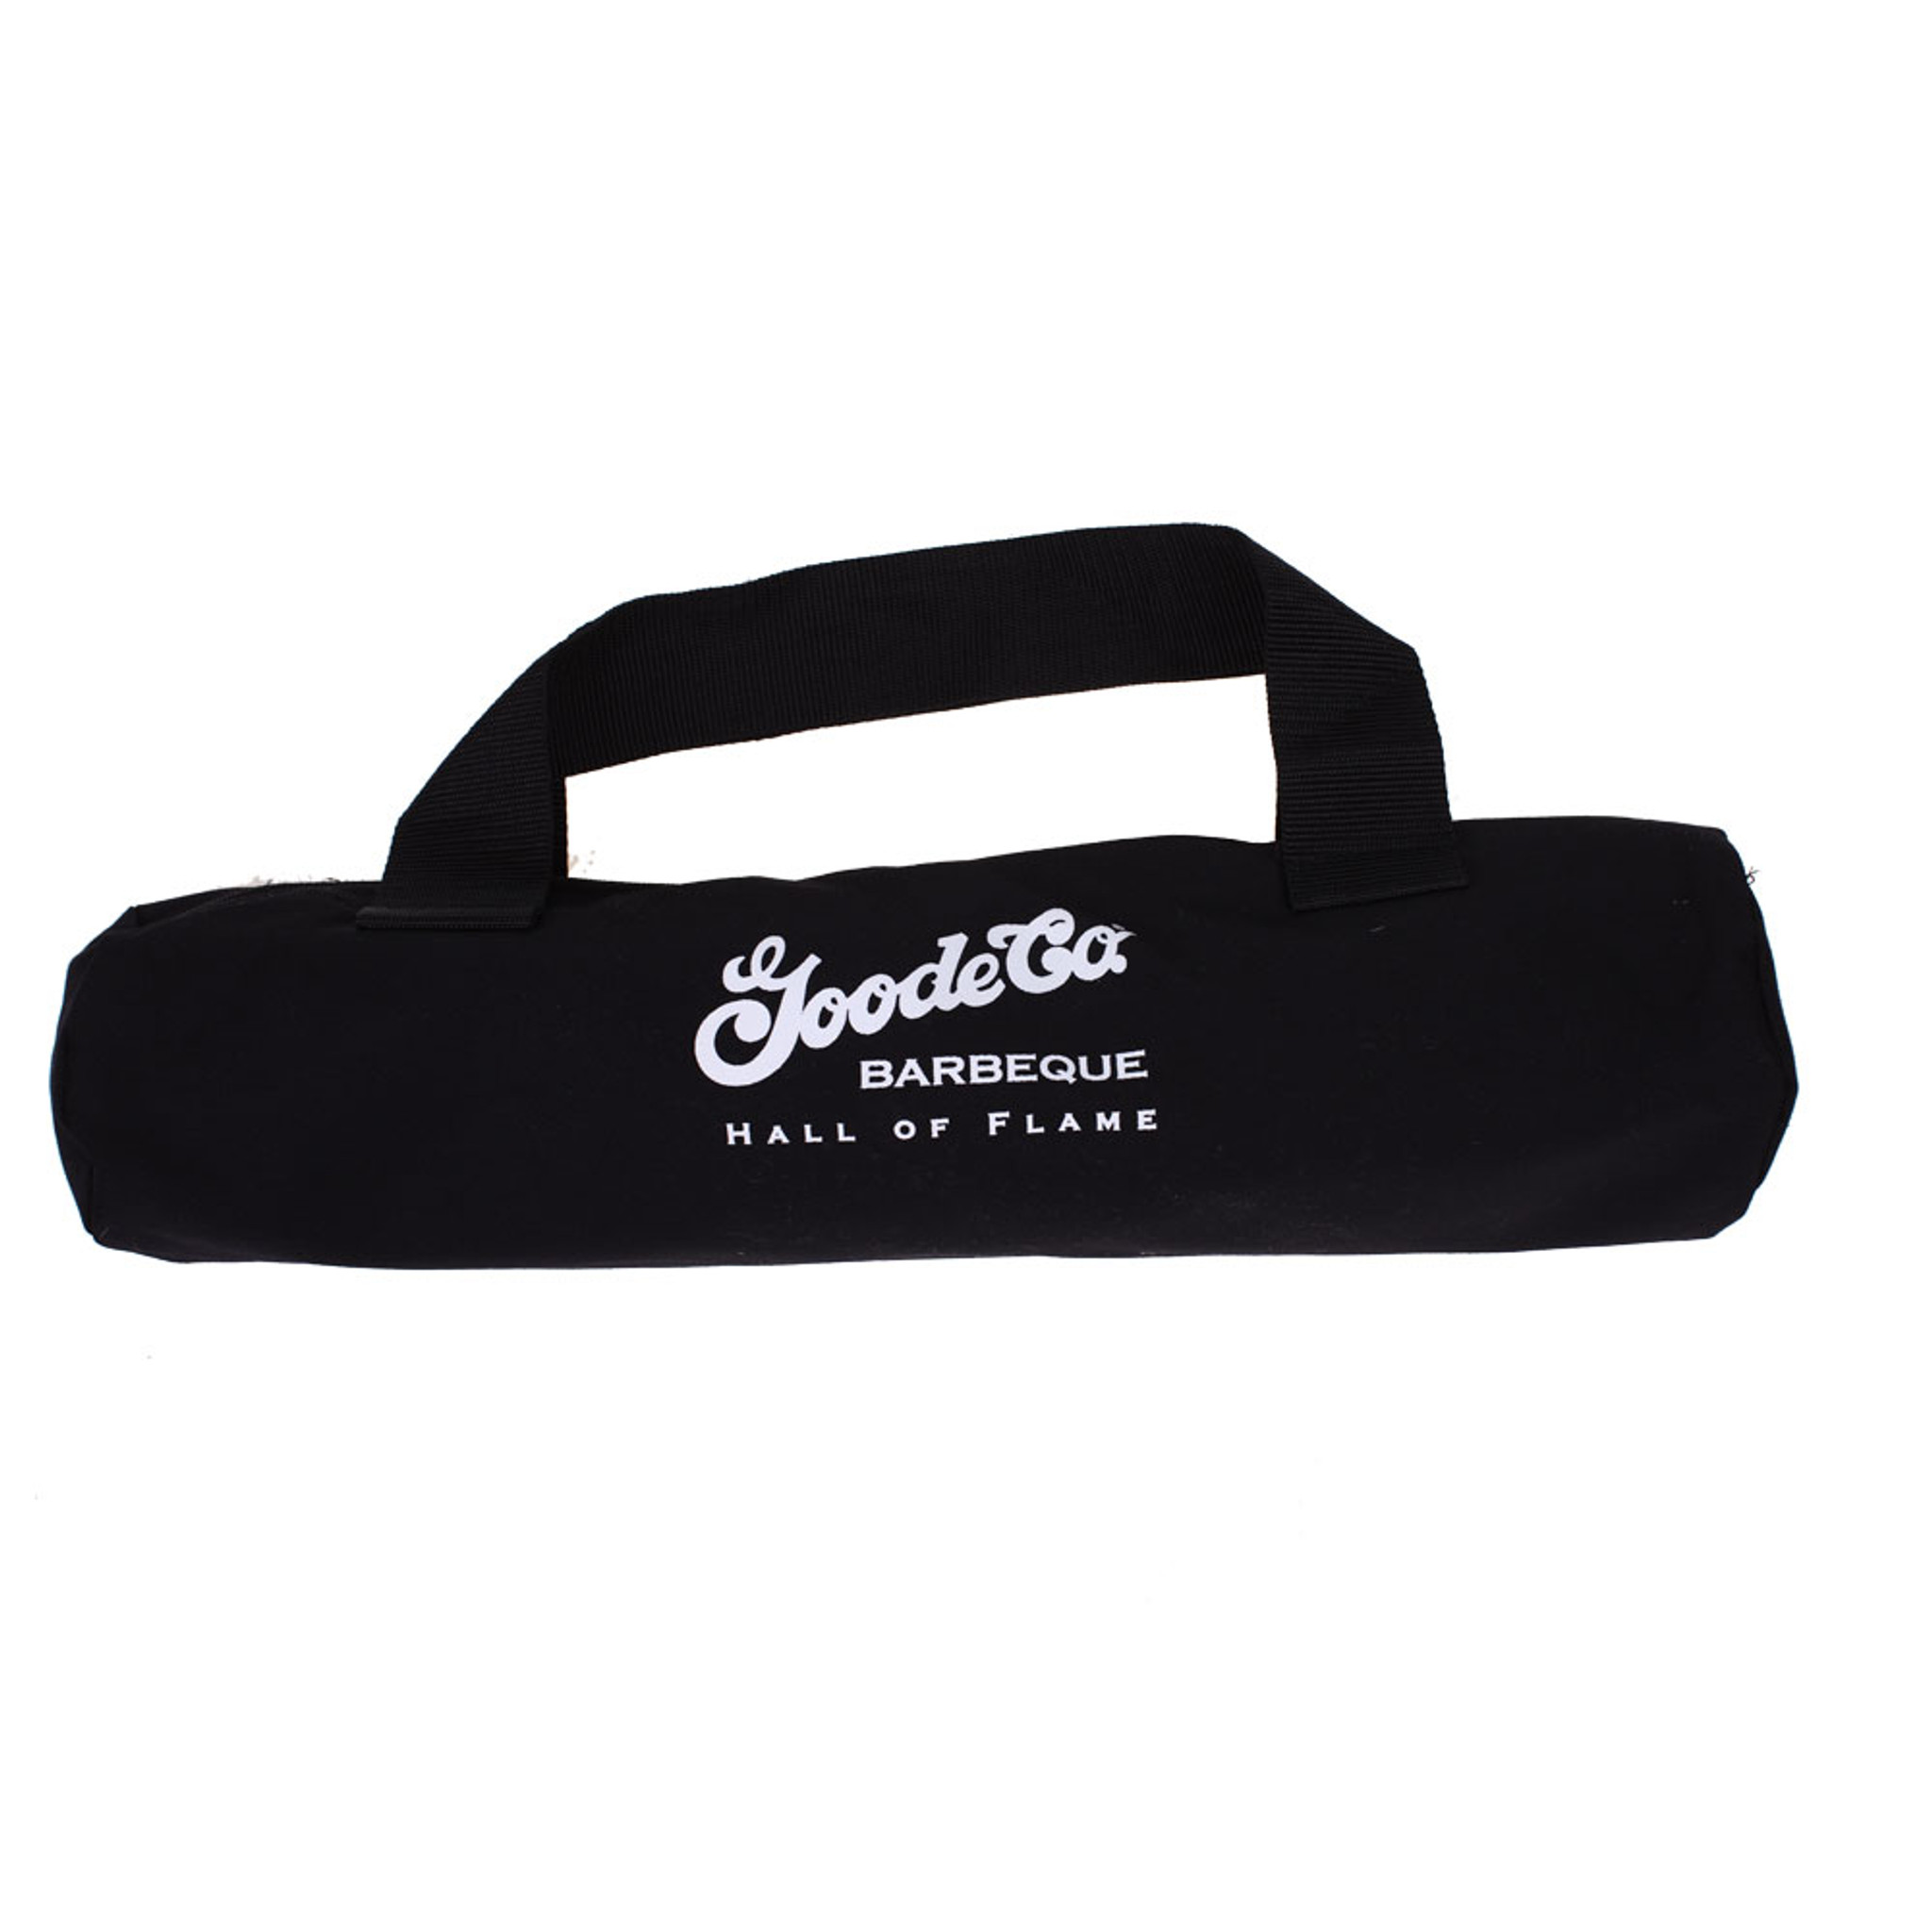 Goode Co's black canvas Grilling Tool Bag.